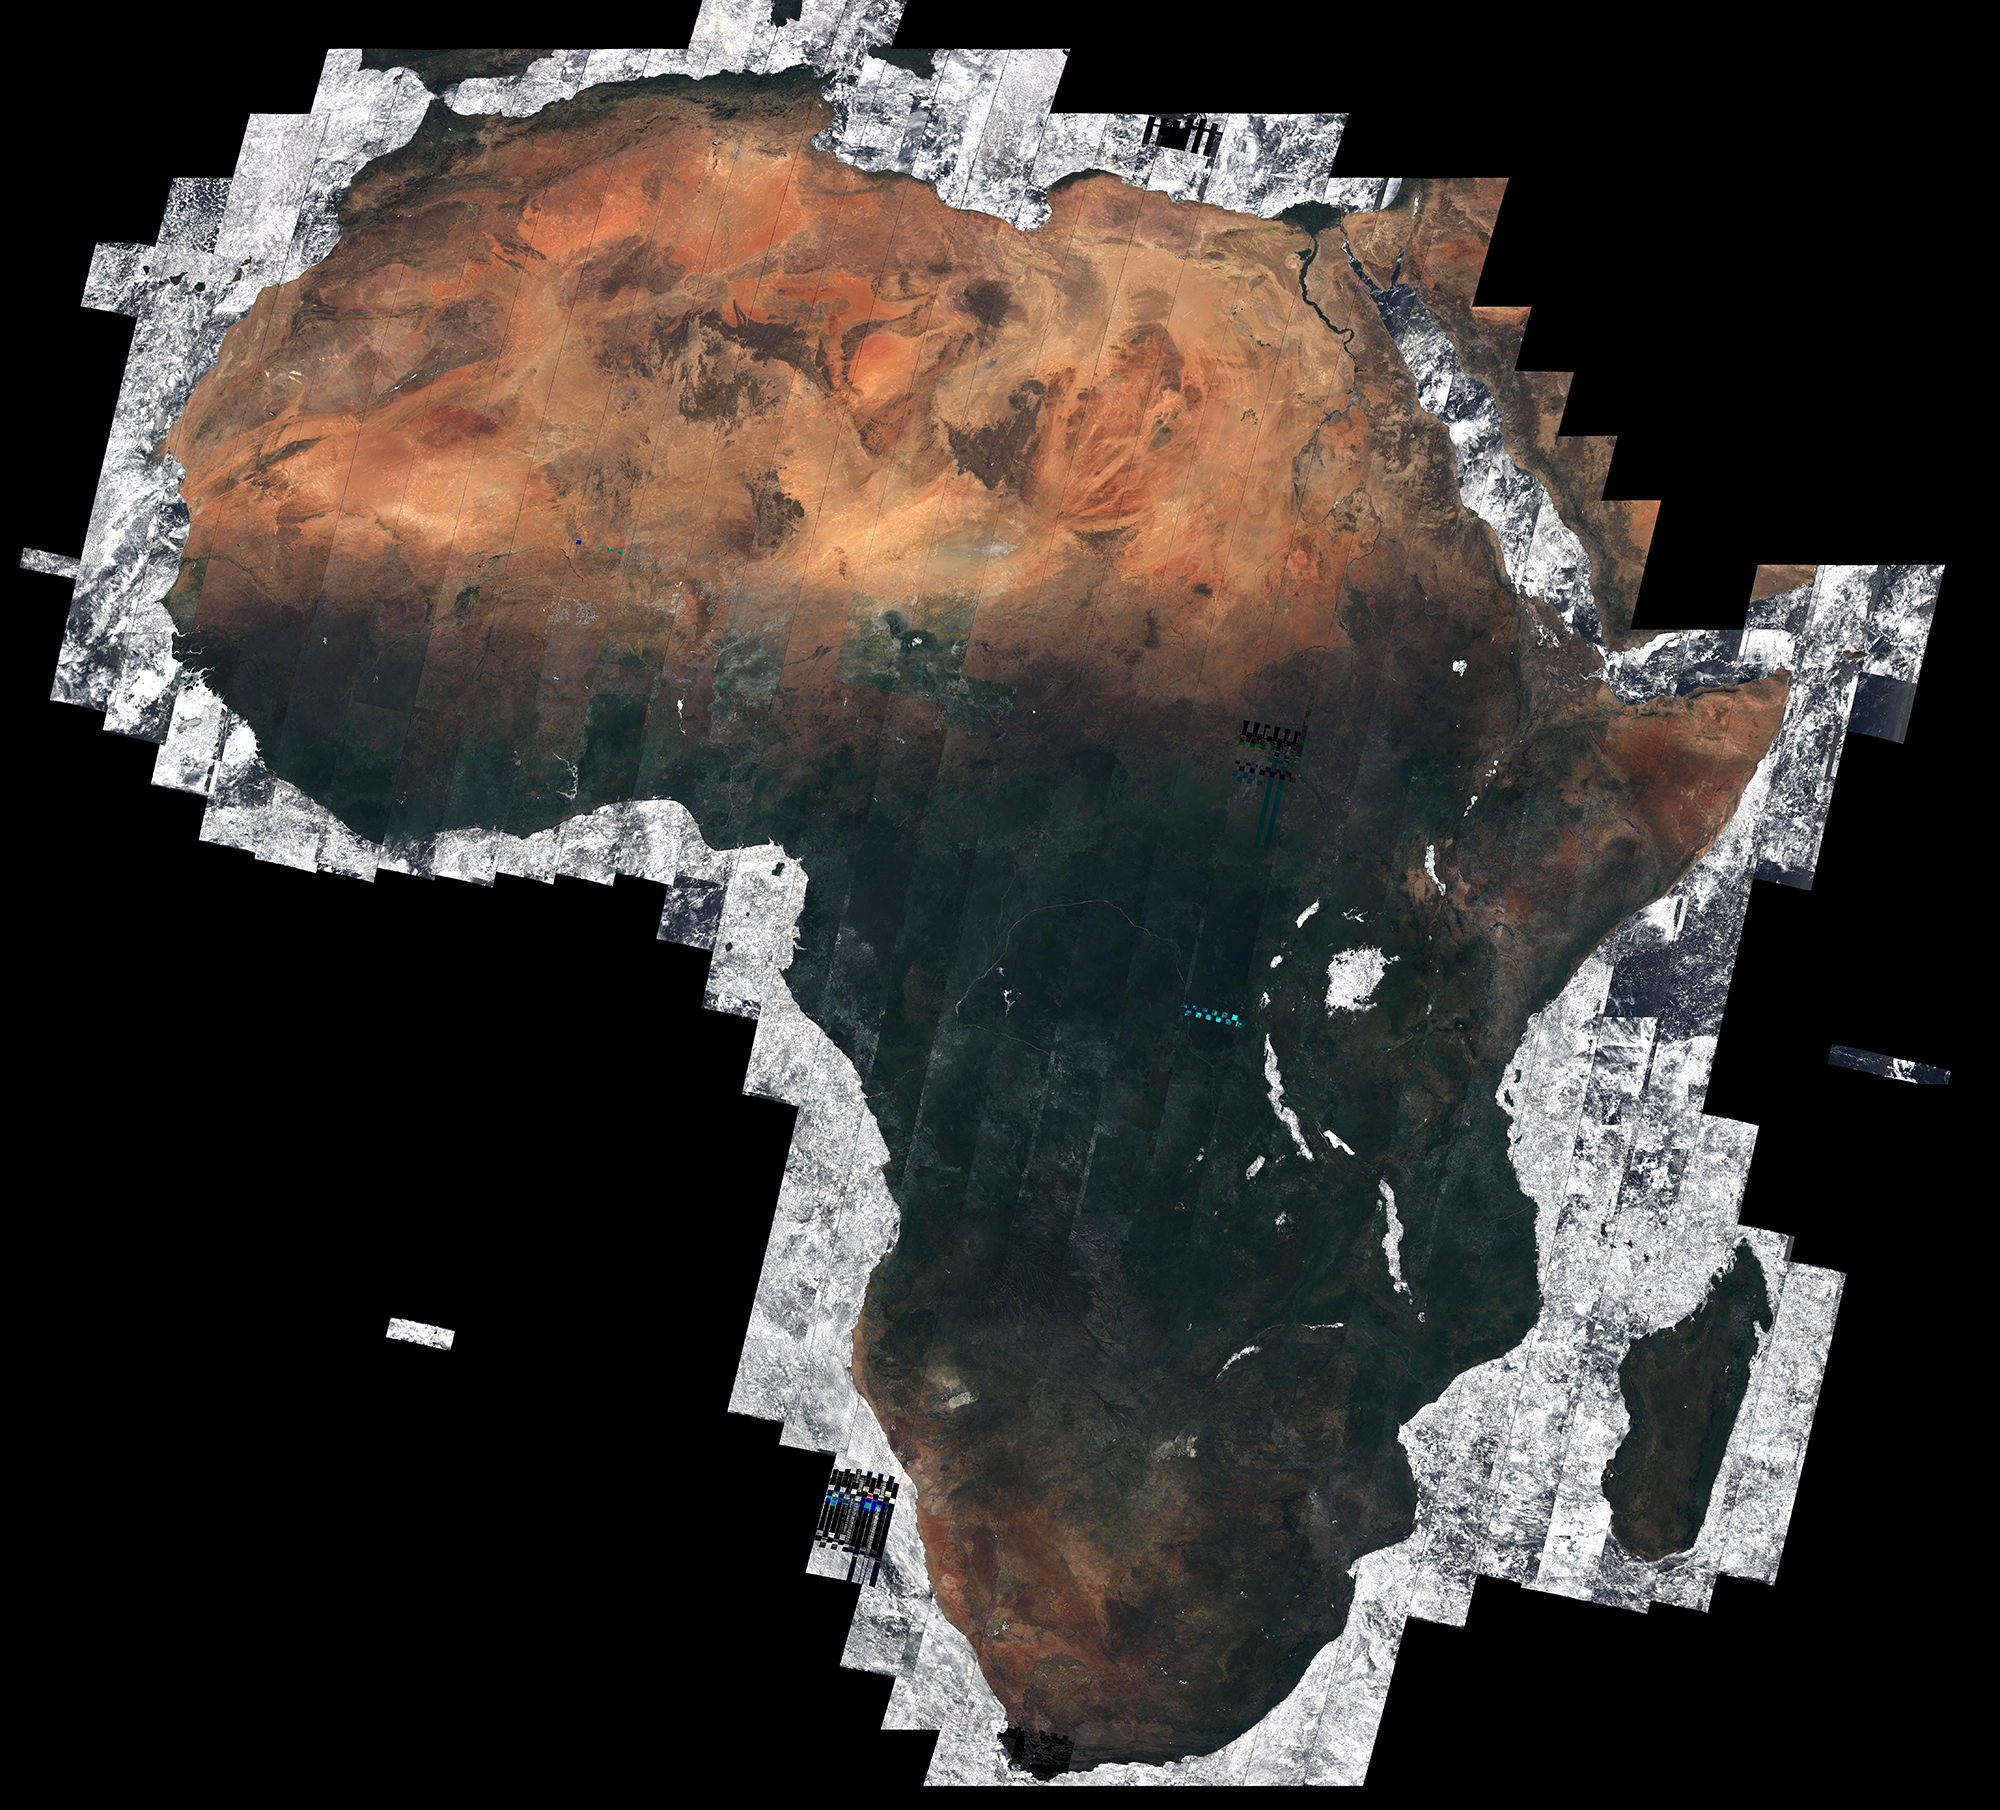 Space In Images African Mosaic - Whole world satellite map